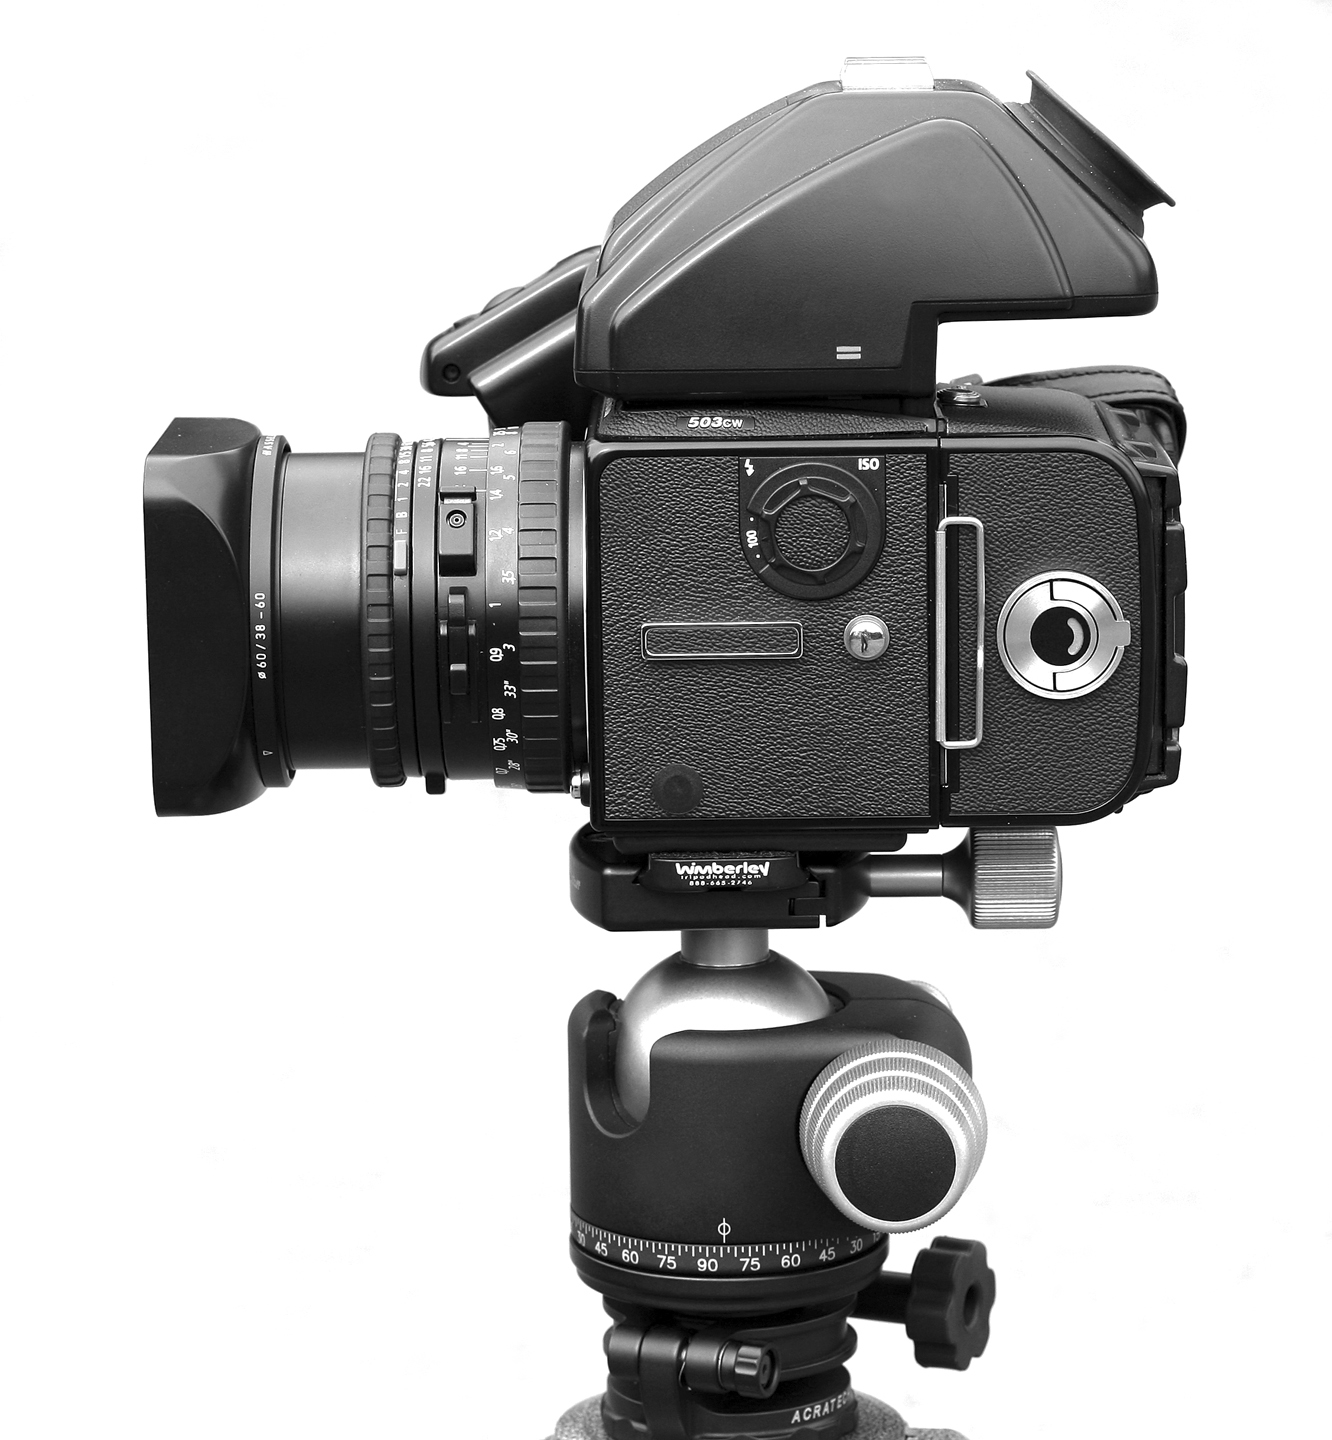 Hasselblad 503cw With Winder & 60mm Cfi - GetDPI Image Gallery